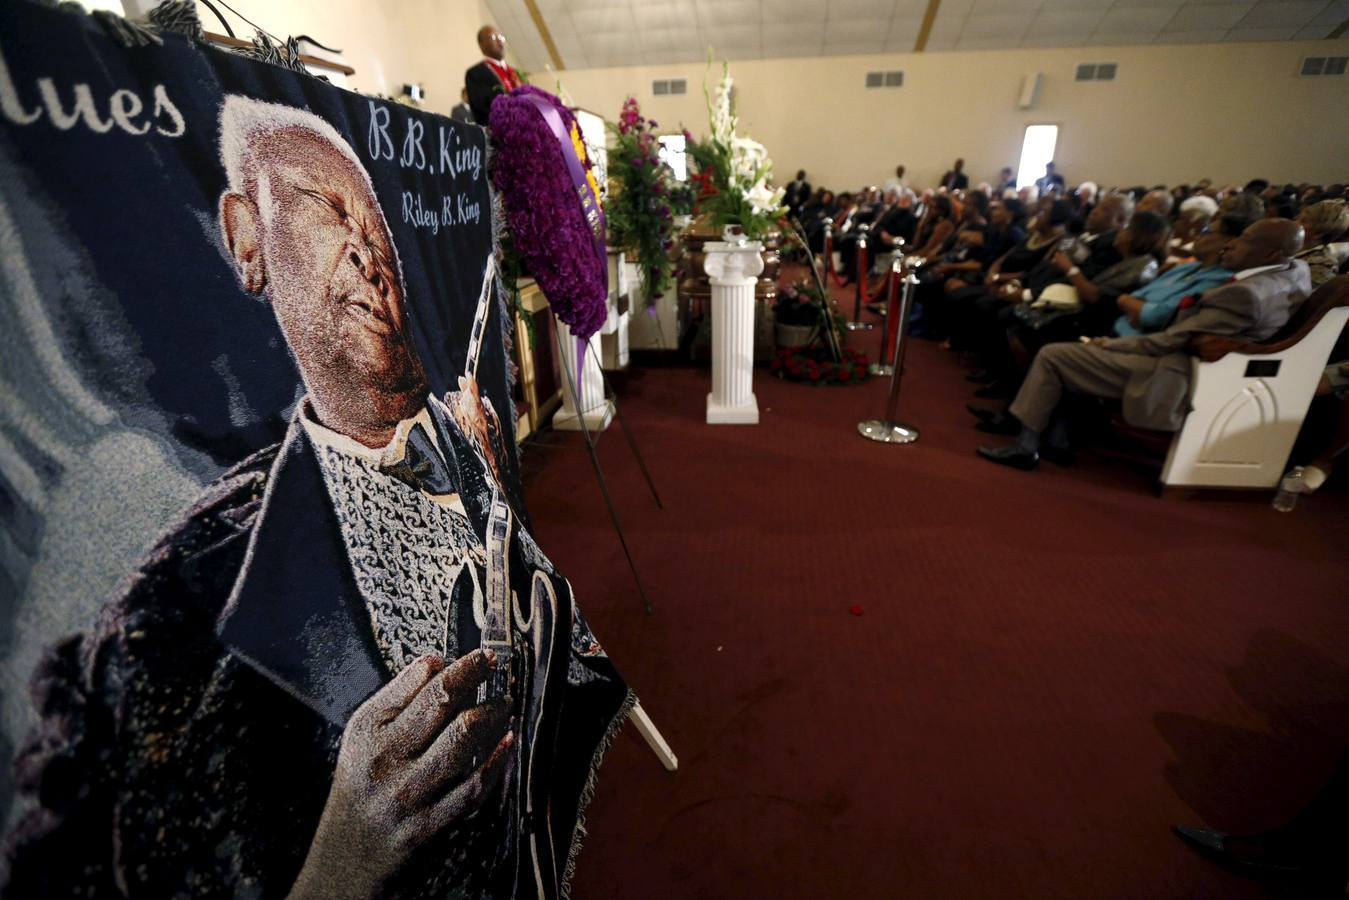 bb king funeral blanket